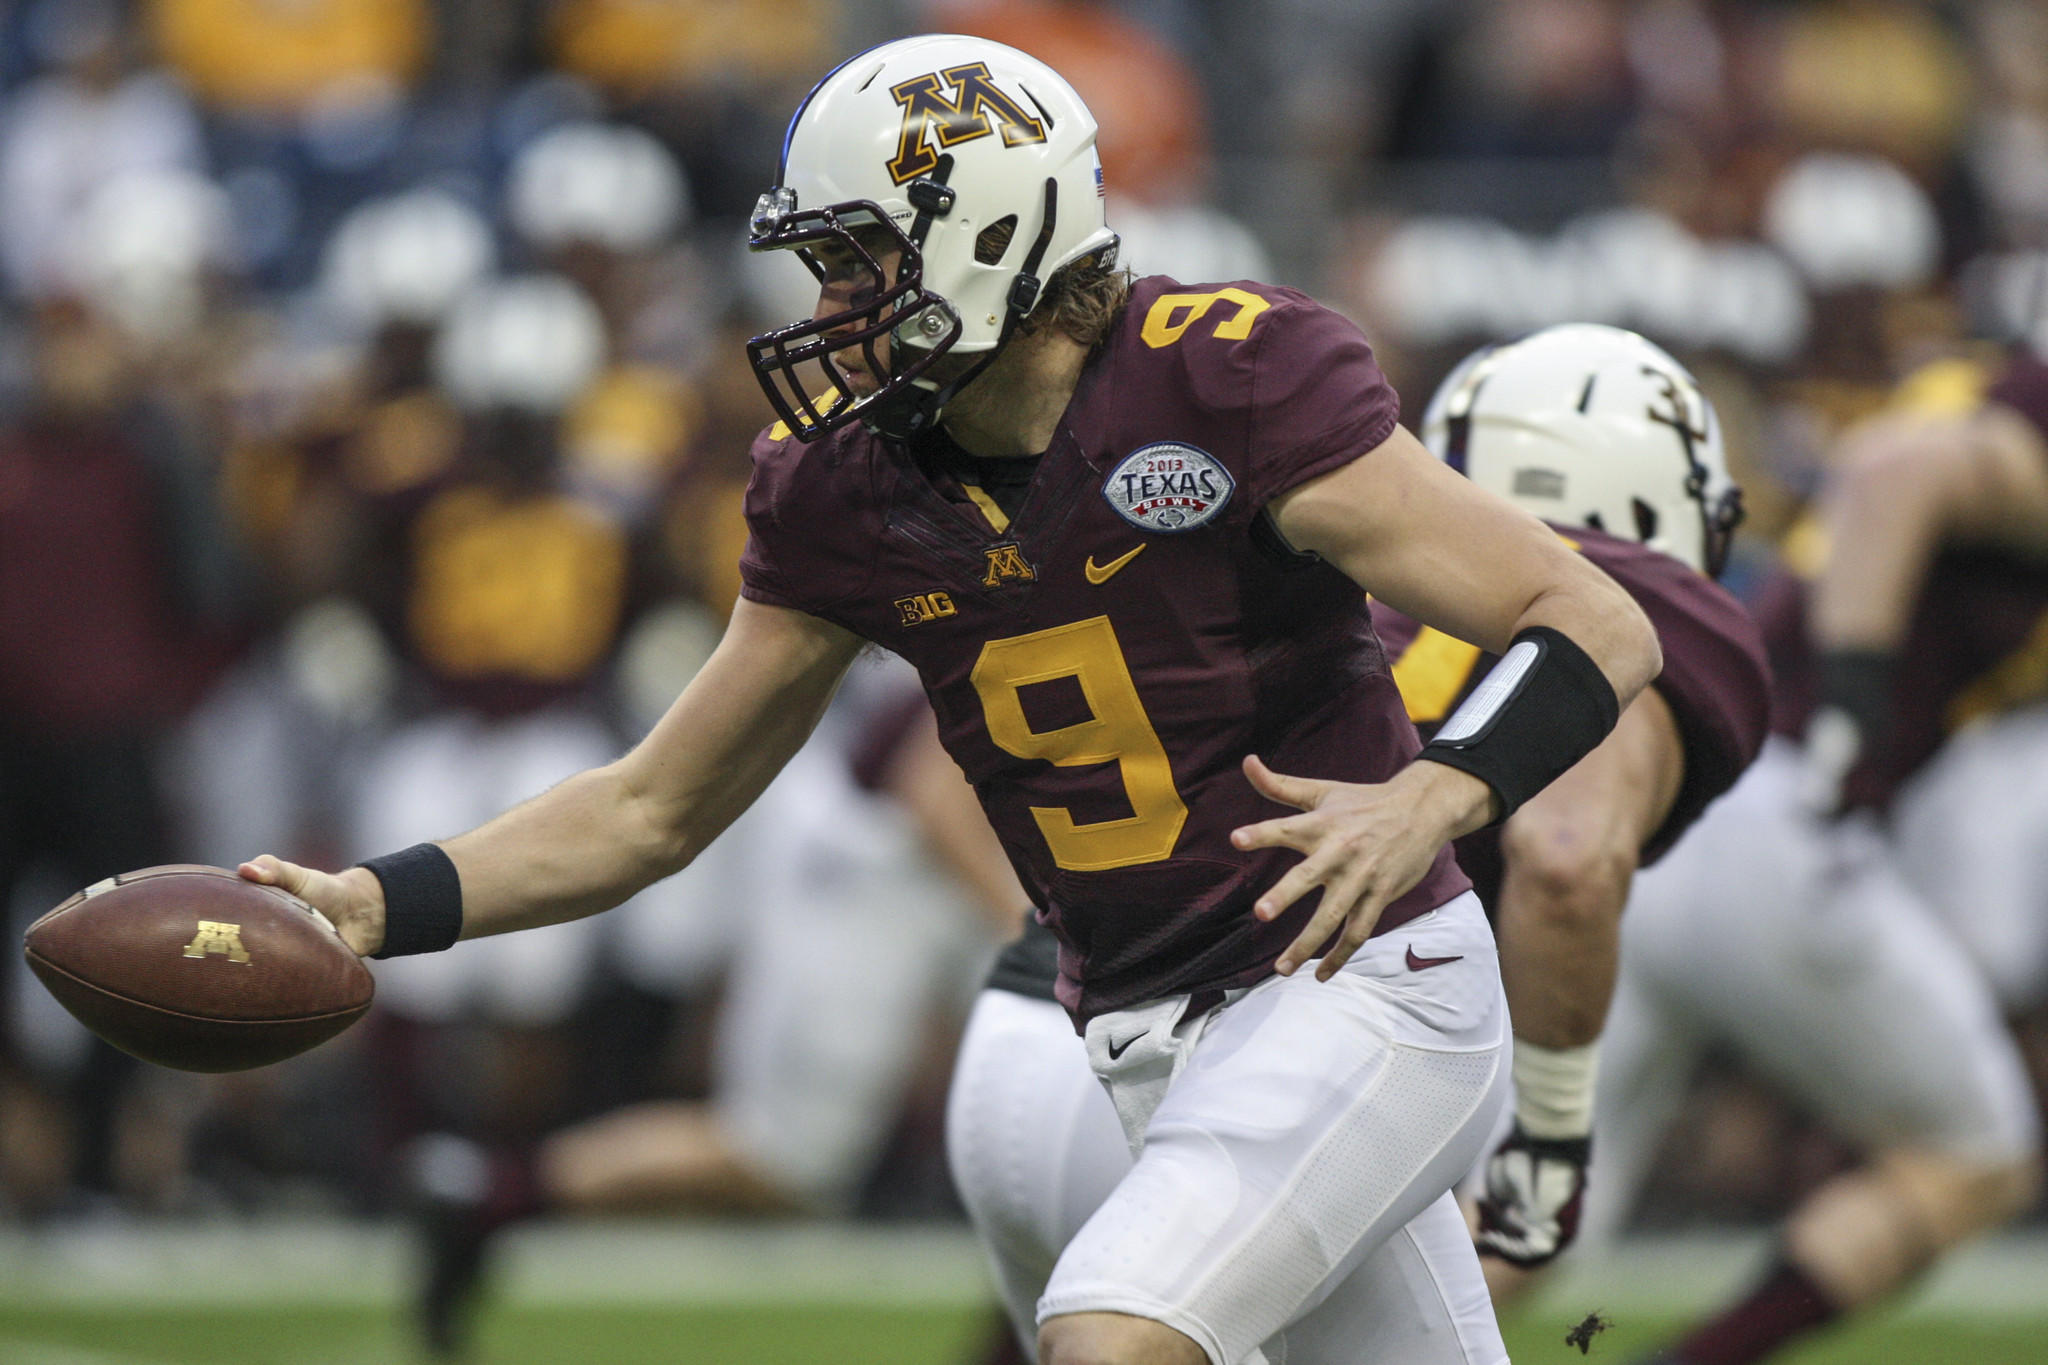 Minnesota quarterback Philip Nelson hands the ball off during the first quarter of the Texas Bowl against Syracuse.